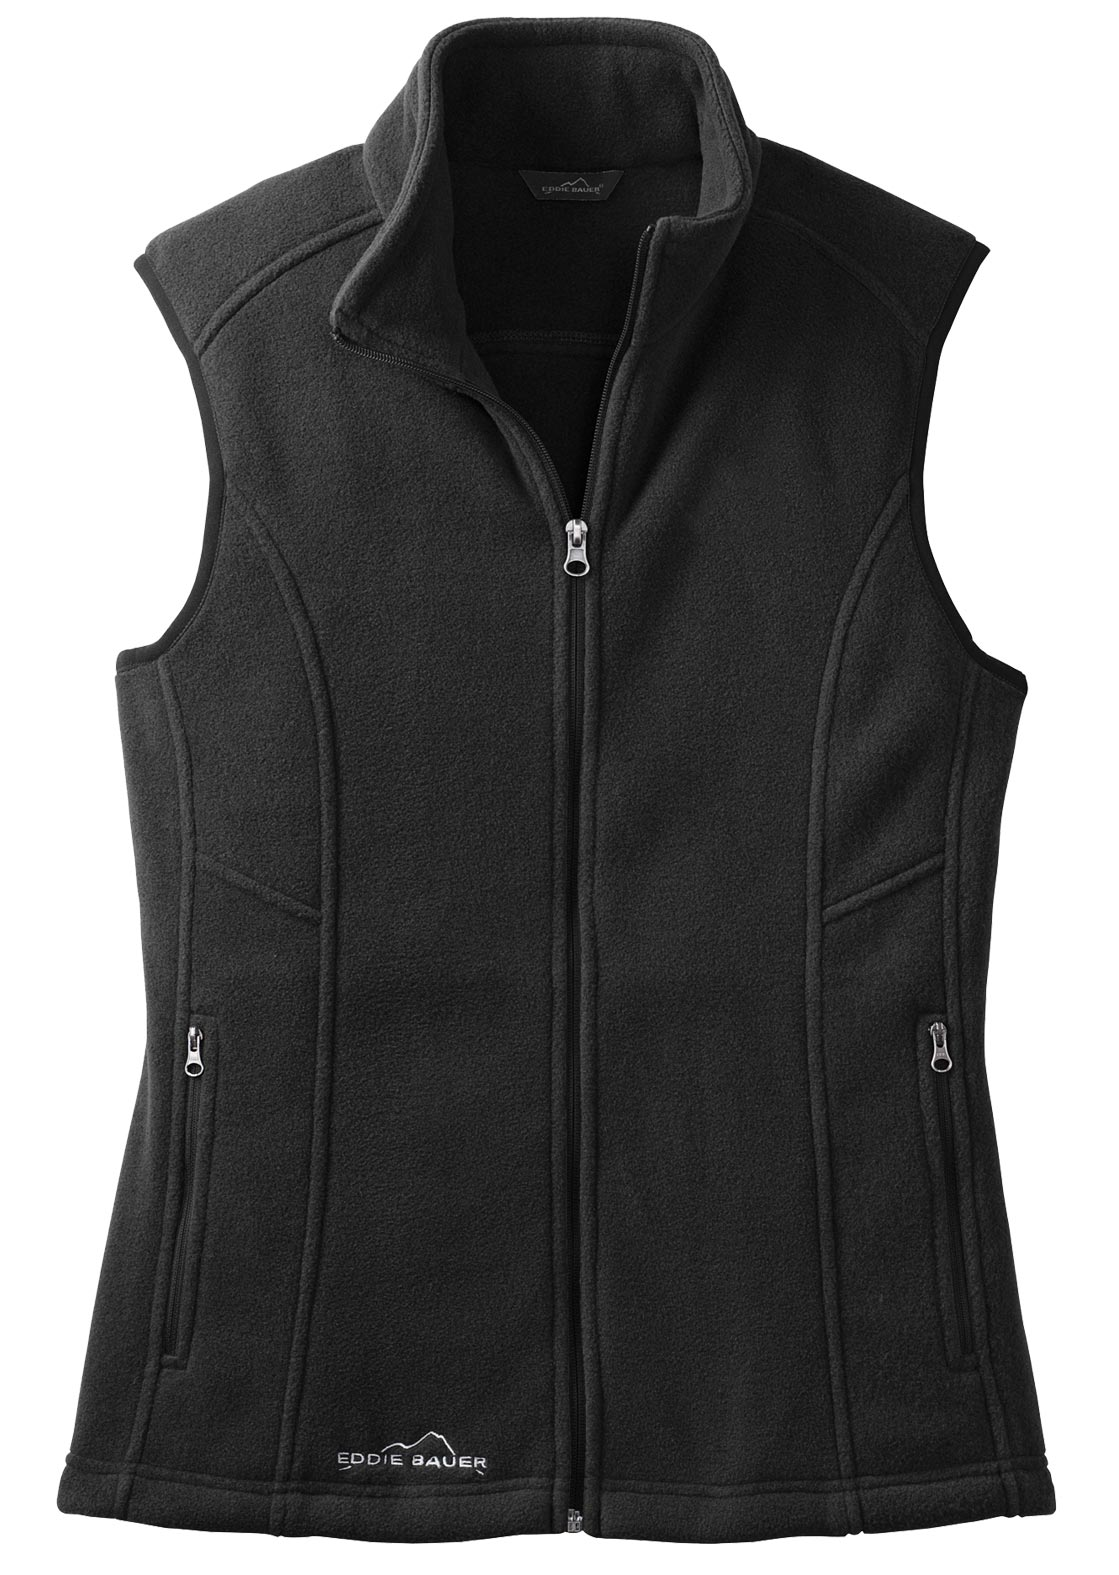 Eddie Bauer� Ladies Full-zip Fleece Vest